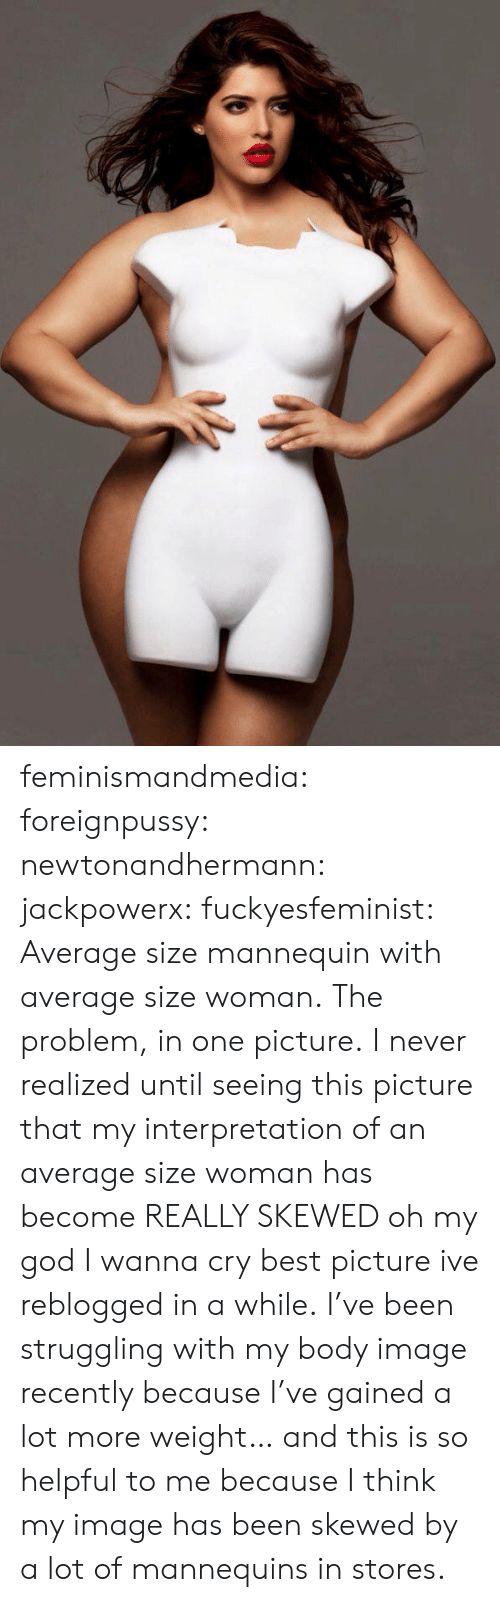 Mannequin: feminismandmedia: foreignpussy:  newtonandhermann:  jackpowerx:  fuckyesfeminist:  Average size mannequin with average size woman.  The problem, in one picture.  I never realized until seeing this picture that my interpretation of an average size woman has become REALLY SKEWED oh my god I wanna cry  best picture ive reblogged in a while.  I've been struggling with my body image recently because I've gained a lot more weight… and this is so helpful to me because I think my image has been skewed by a lot of mannequins in stores.